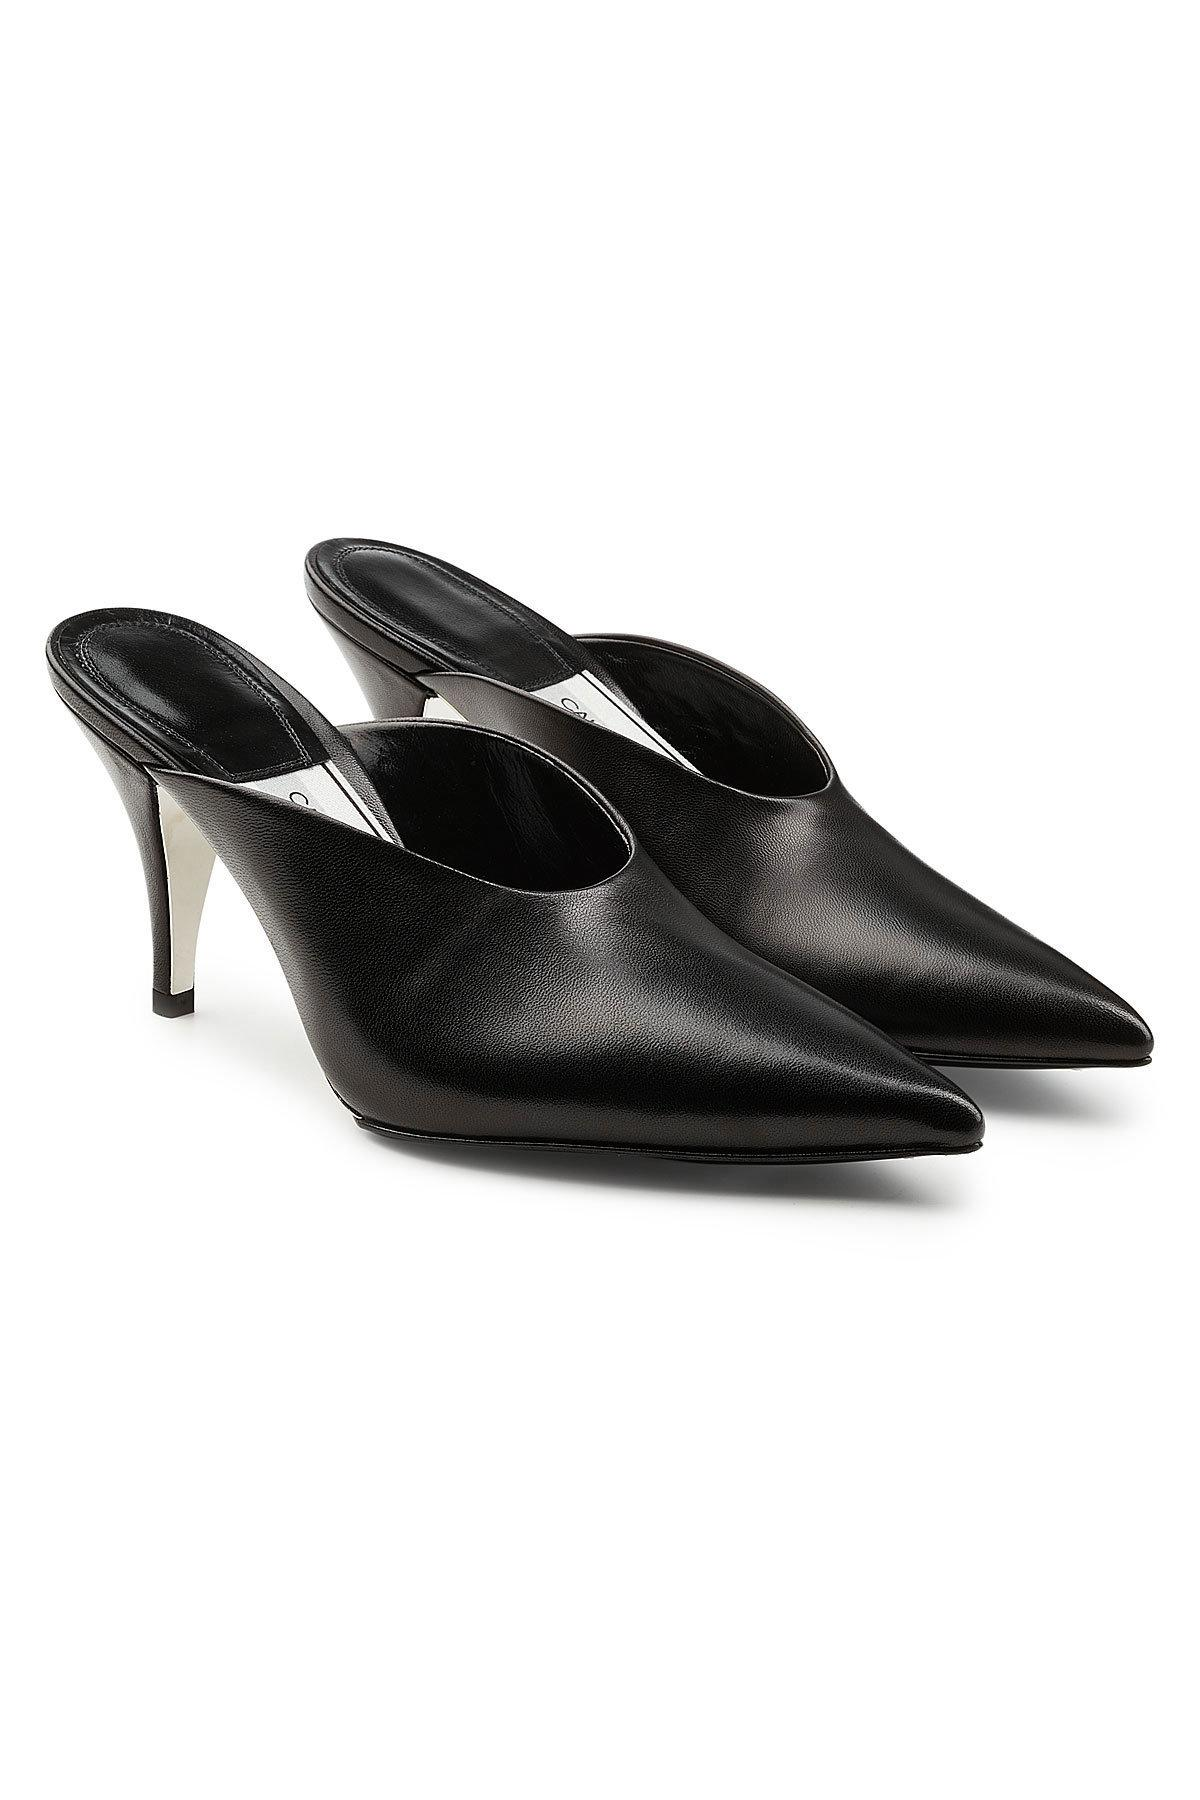 Get To Buy For Sale Discount Big Sale Calvin Klein Roslynn Leather Mules Cheap Extremely Low Price Fee Shipping Cheap Original rQvjox